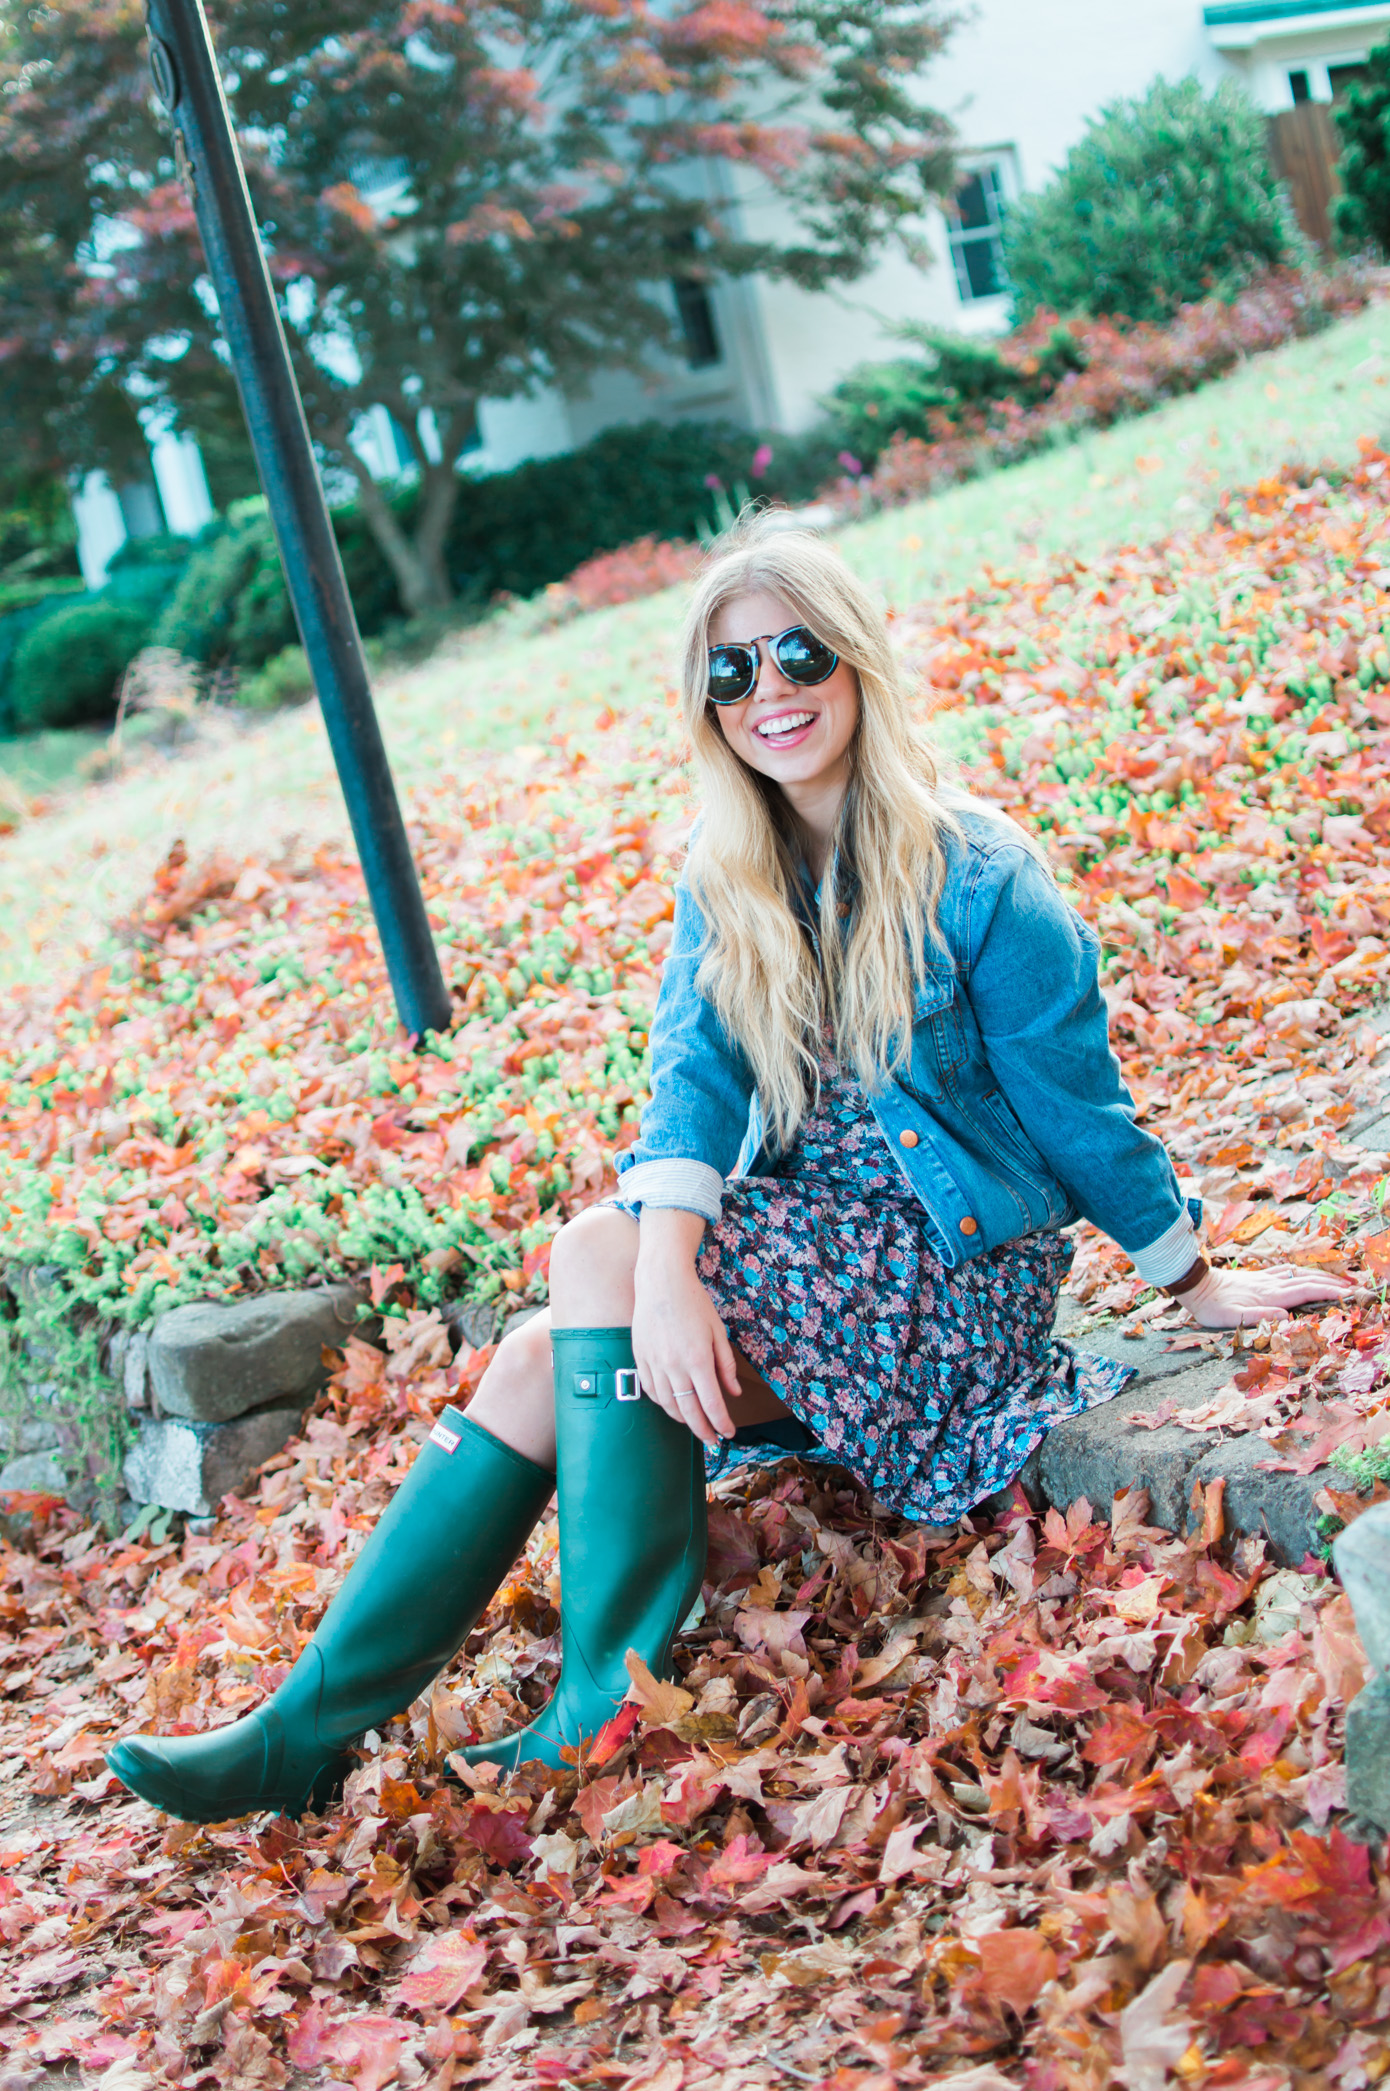 J.Crew Ruffle Hem Dress in Floral Paisley | How to Style Hunter Boots | Louella Reese Life & Style Blog